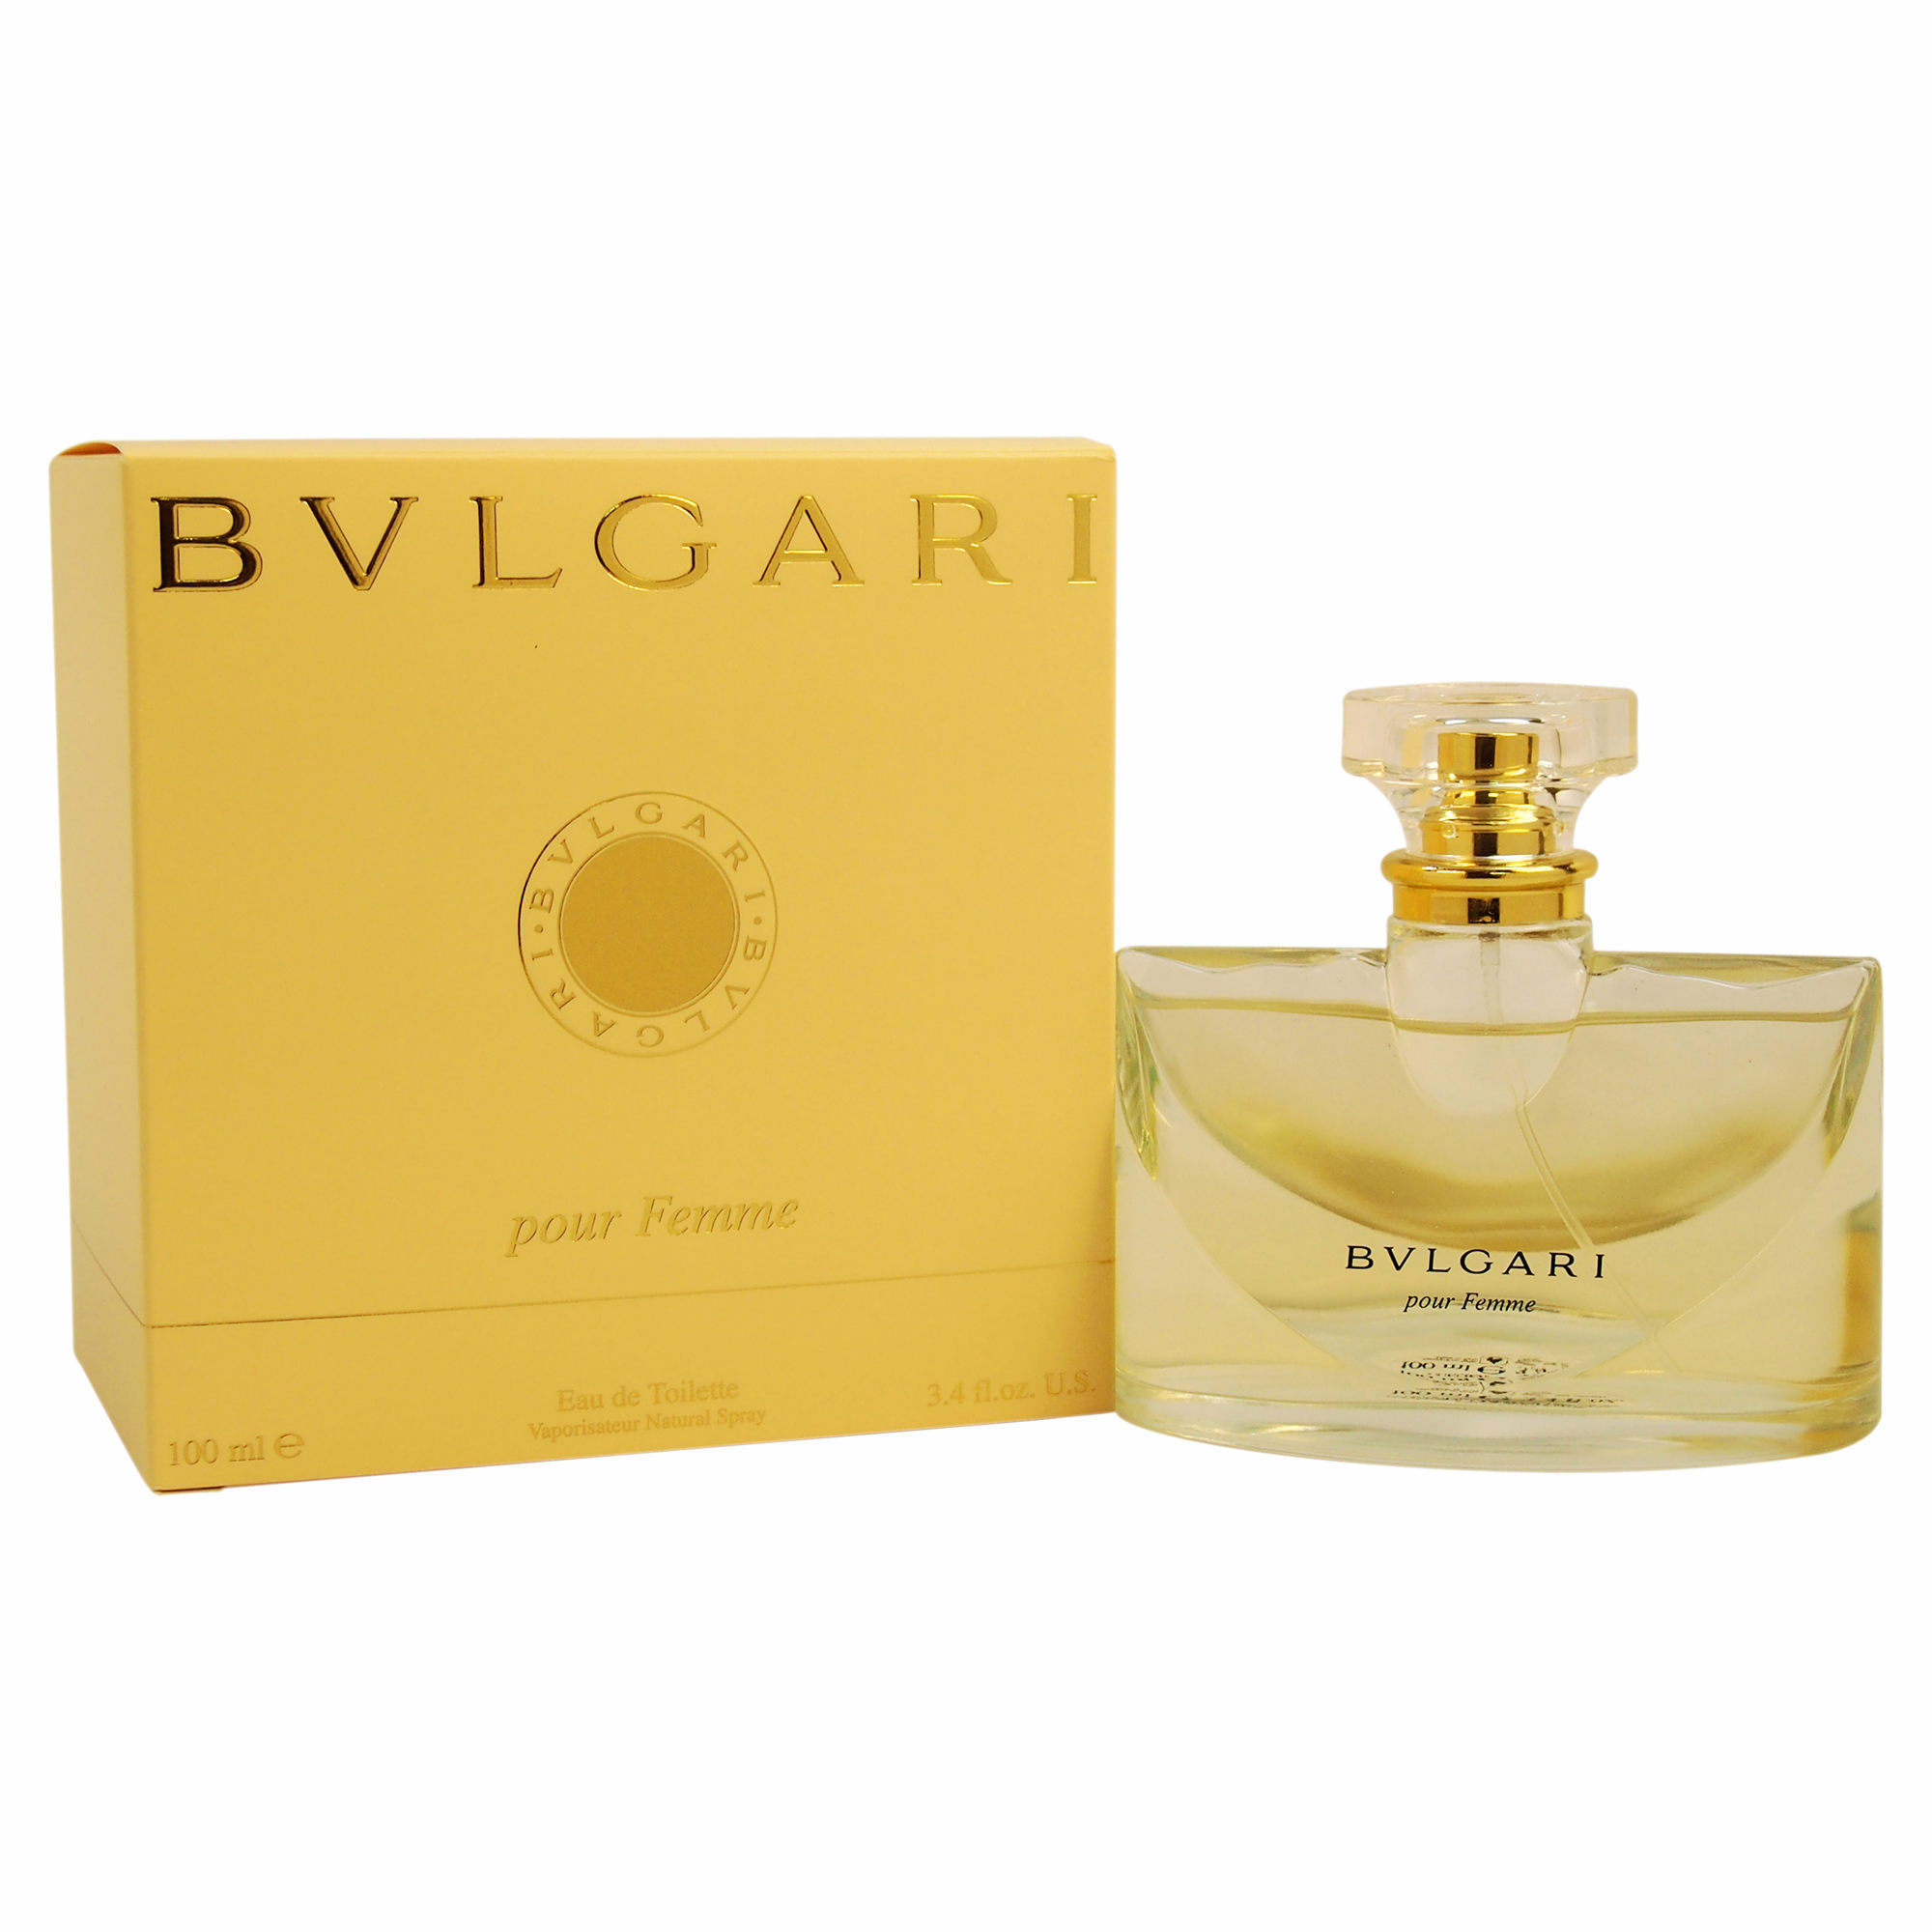 Bvlgari 3.4 oz. Eau De Toilette Spray